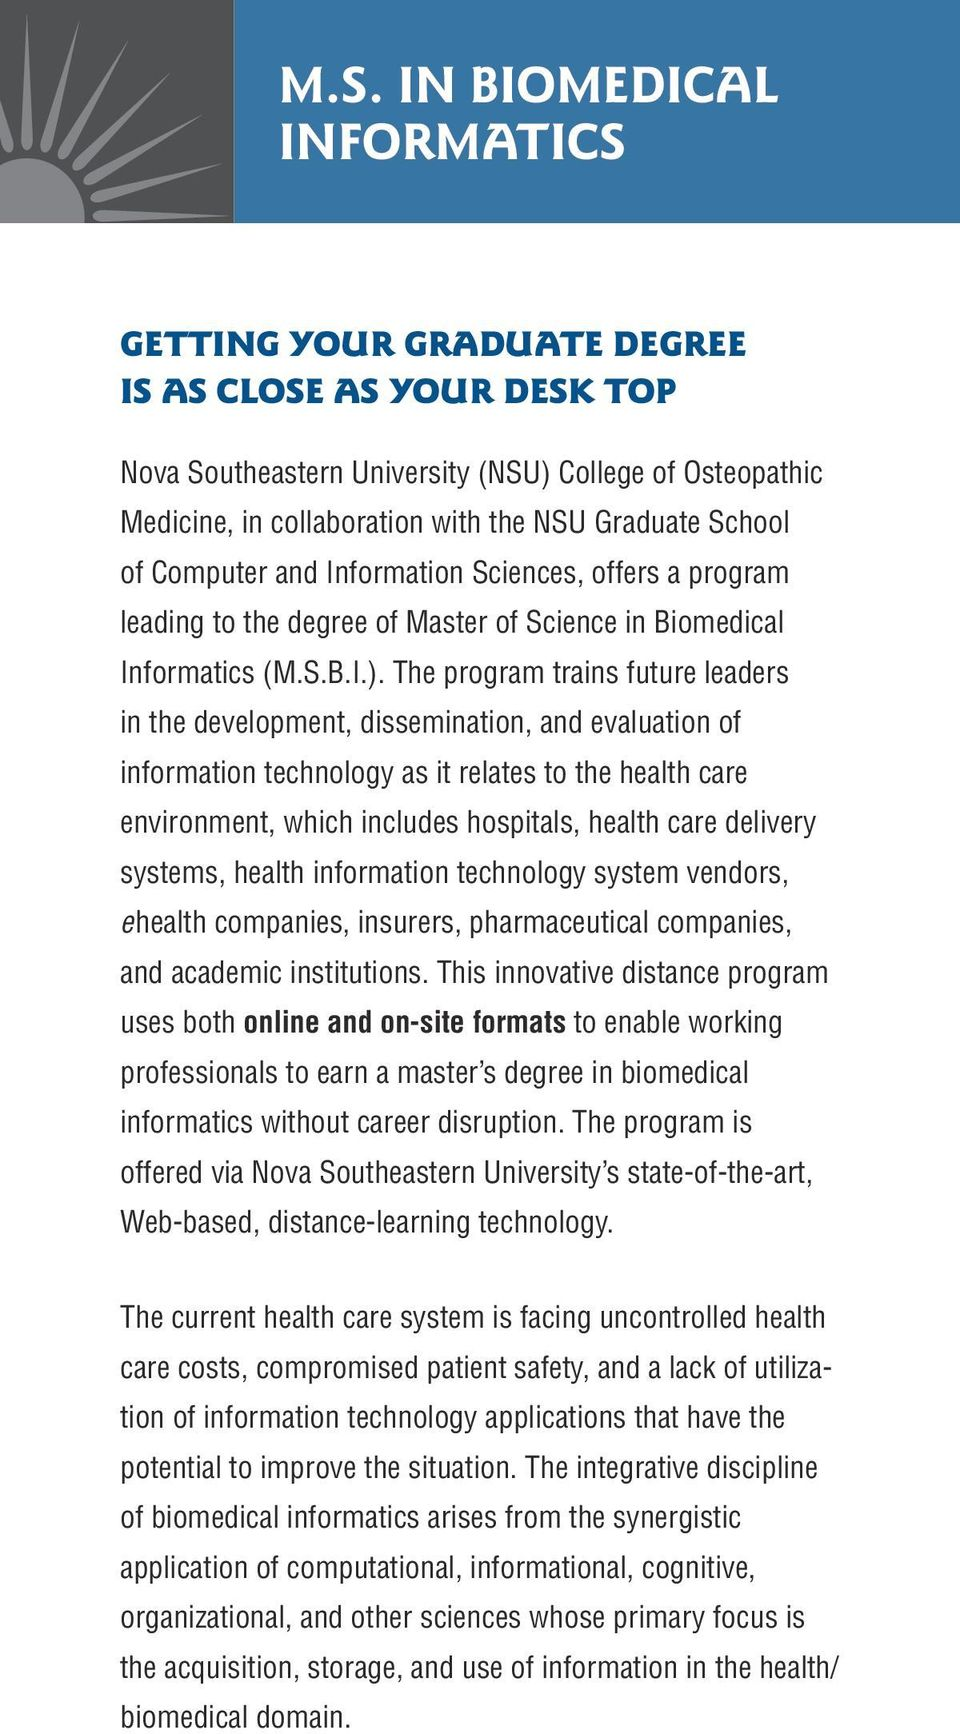 The program trains future leaders in the development, dissemination, and evaluation of information technology as it relates to the health care environment, which includes hospitals, health care